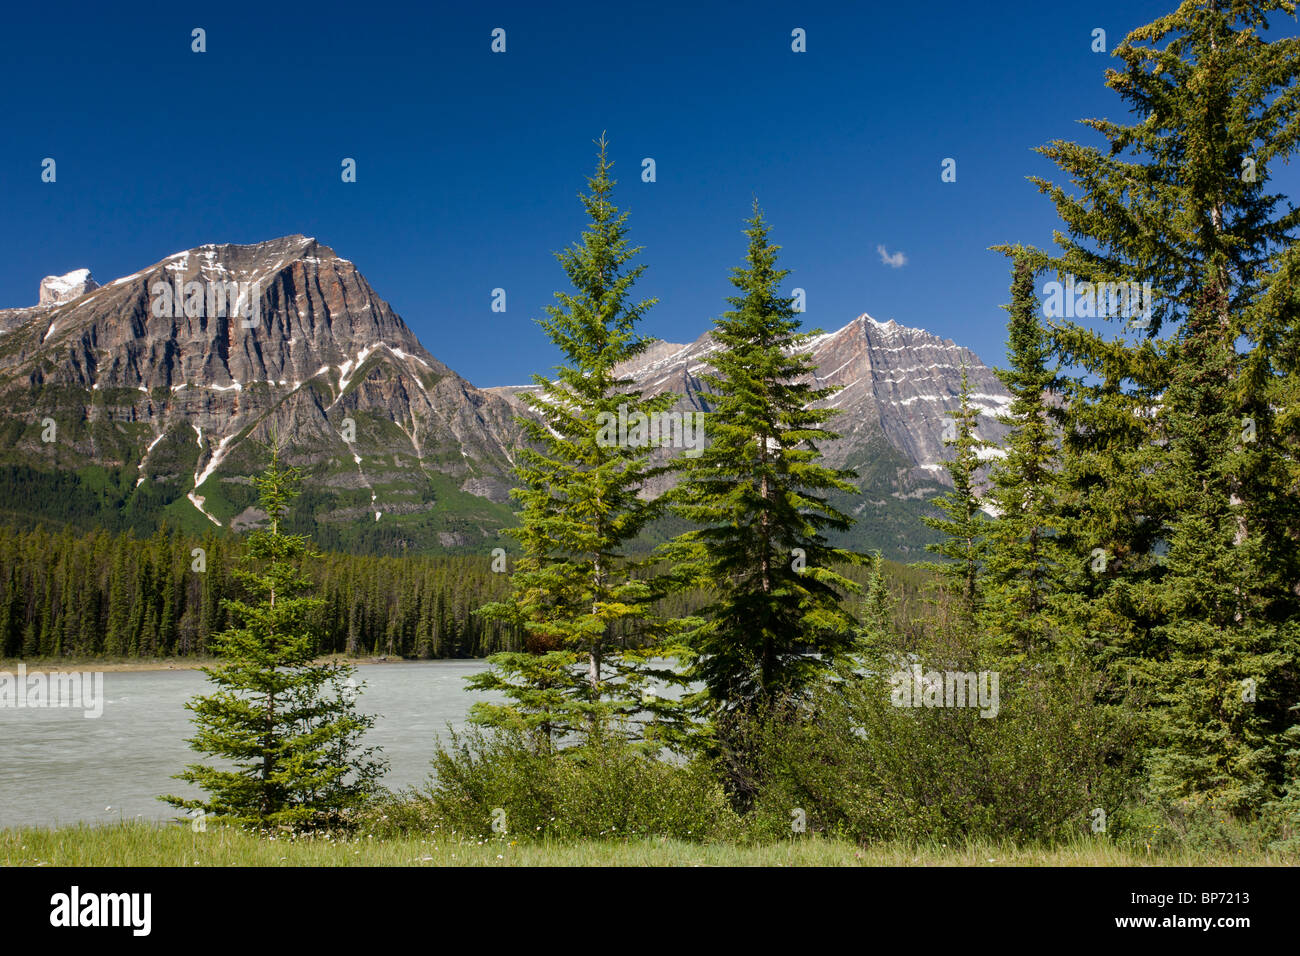 Engelmann Spruces by the Athabasca River, Jasper National Park, The Rockies, Canada - Stock Image